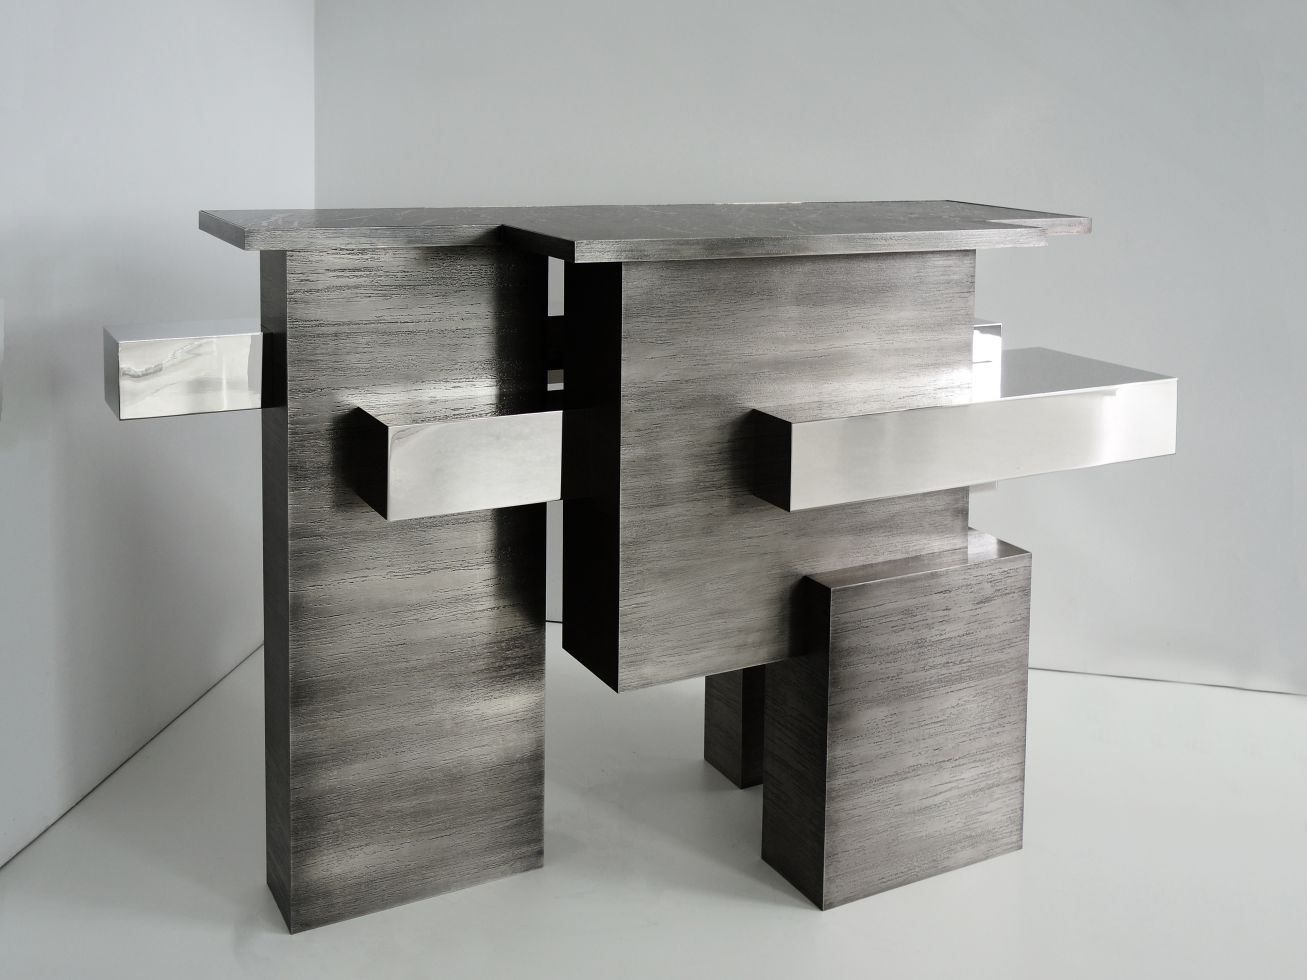 Chaflan Console textures 140 cm length x 85 cm height x 40 cm width. Limited edition of 8 pieces.